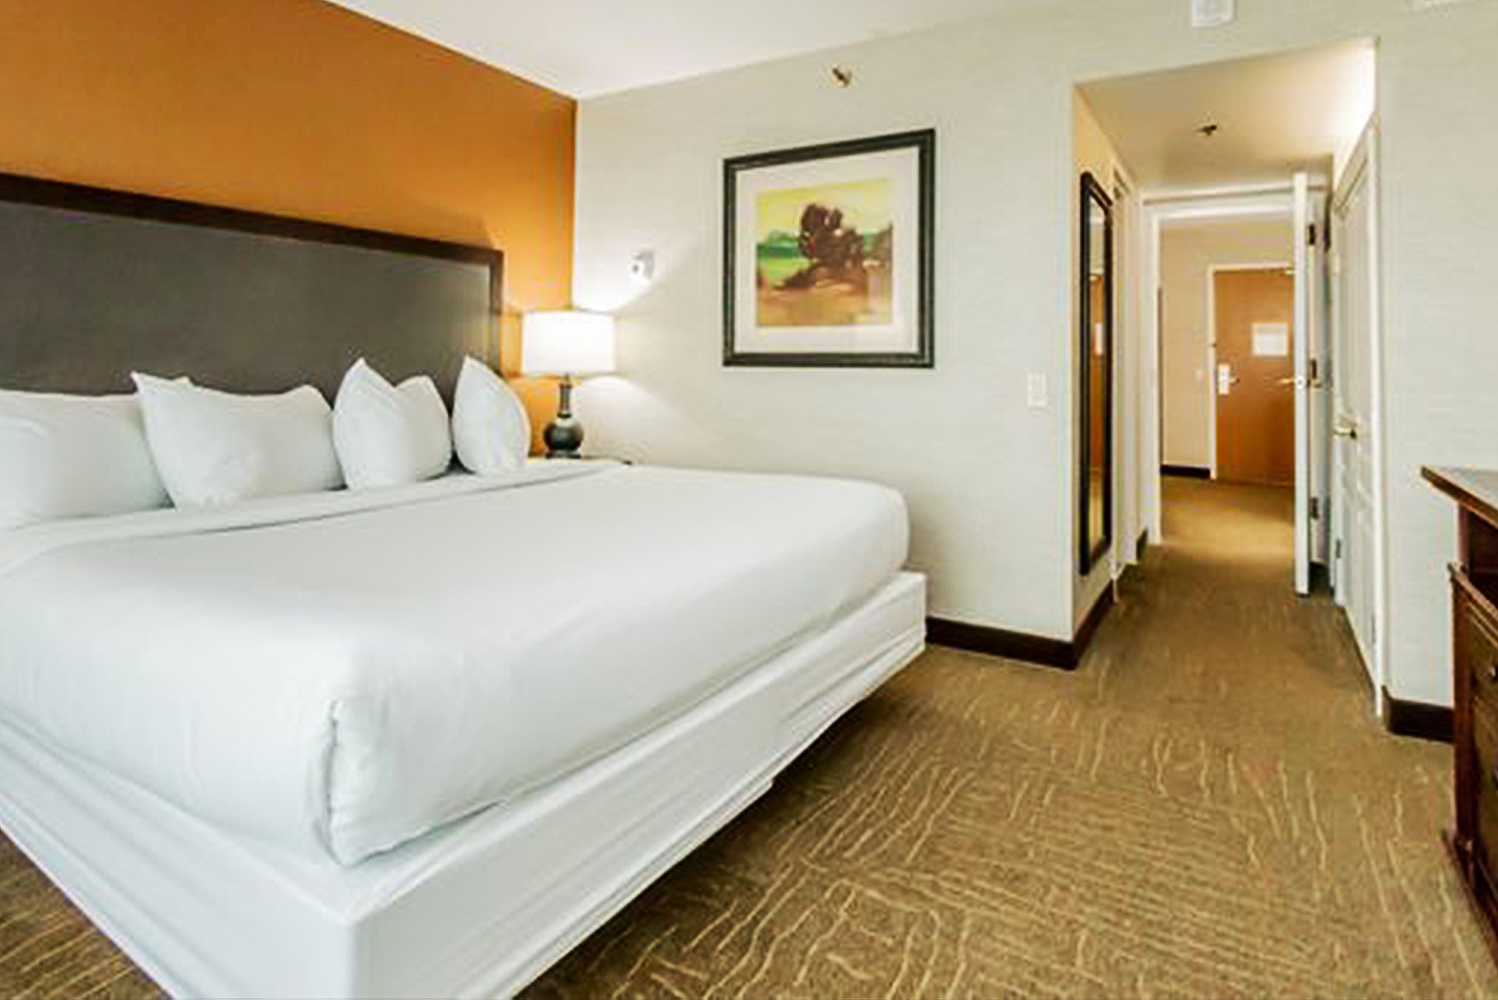 Embassy Suites by Hilton completed a $7.7-million renovation of the Hilton Suites Lexington Green.